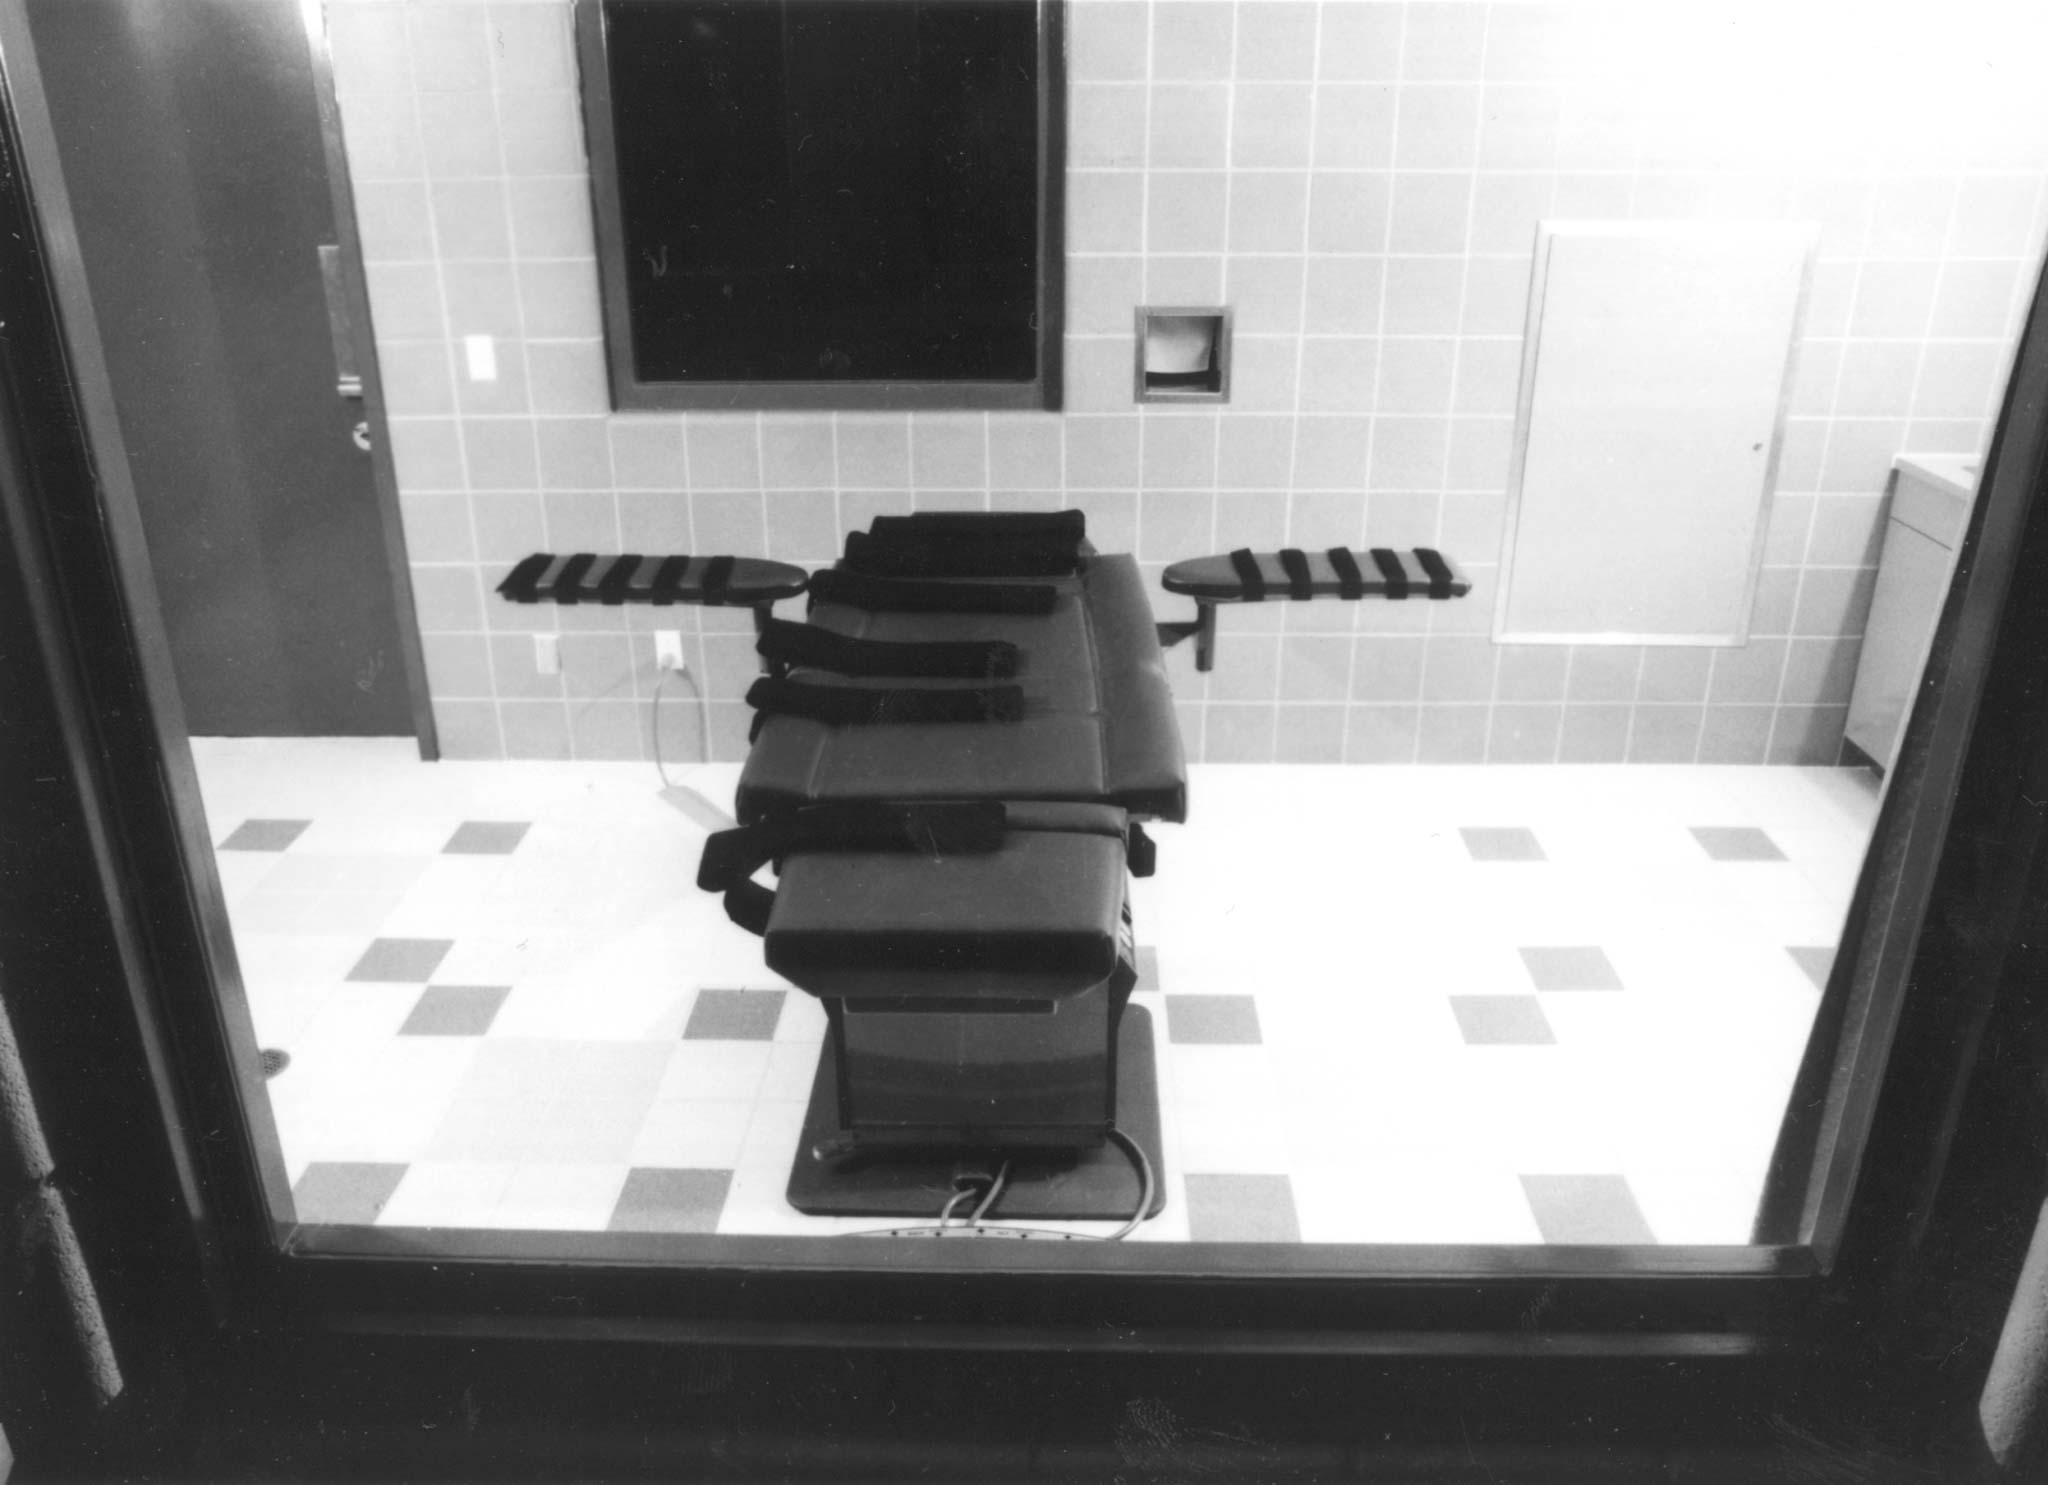 Execution chamber of the U.S. Penitentiary in Terre Haute, Indiana